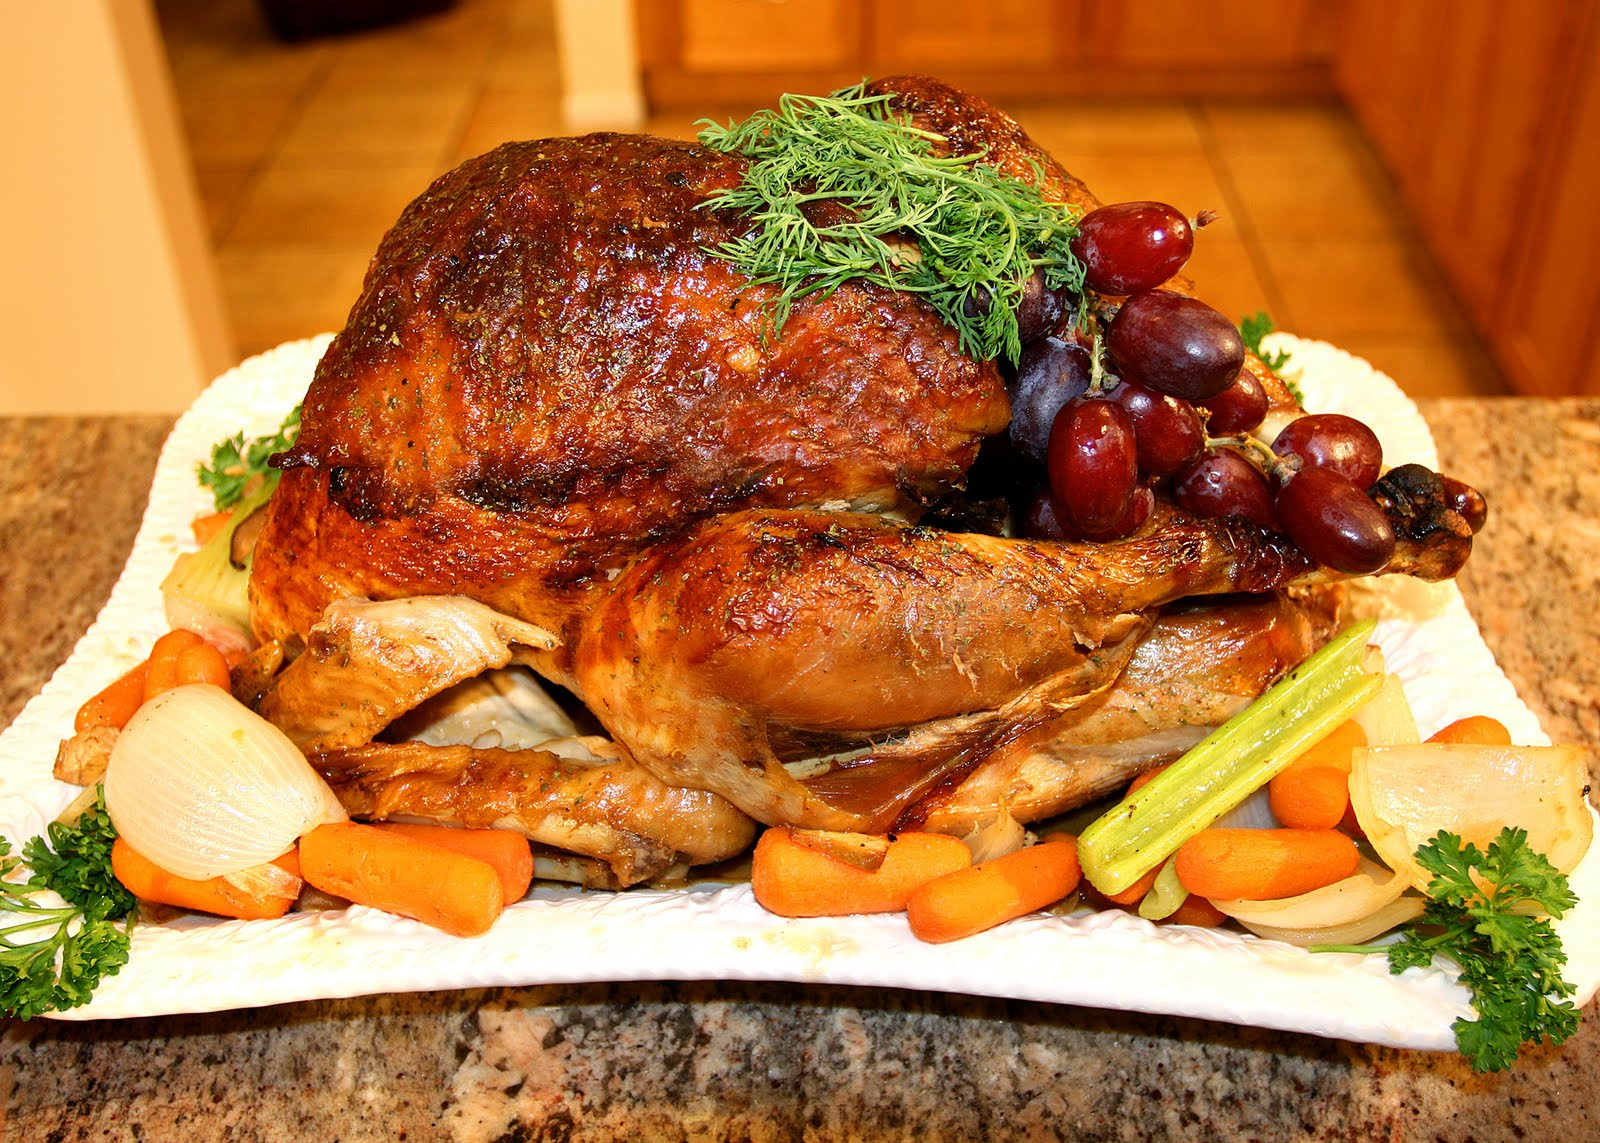 Thanksgiving Turkey Recipe  Cathlyn s Korean Kitchen Thanksgiving Fusion Turkey Recipe